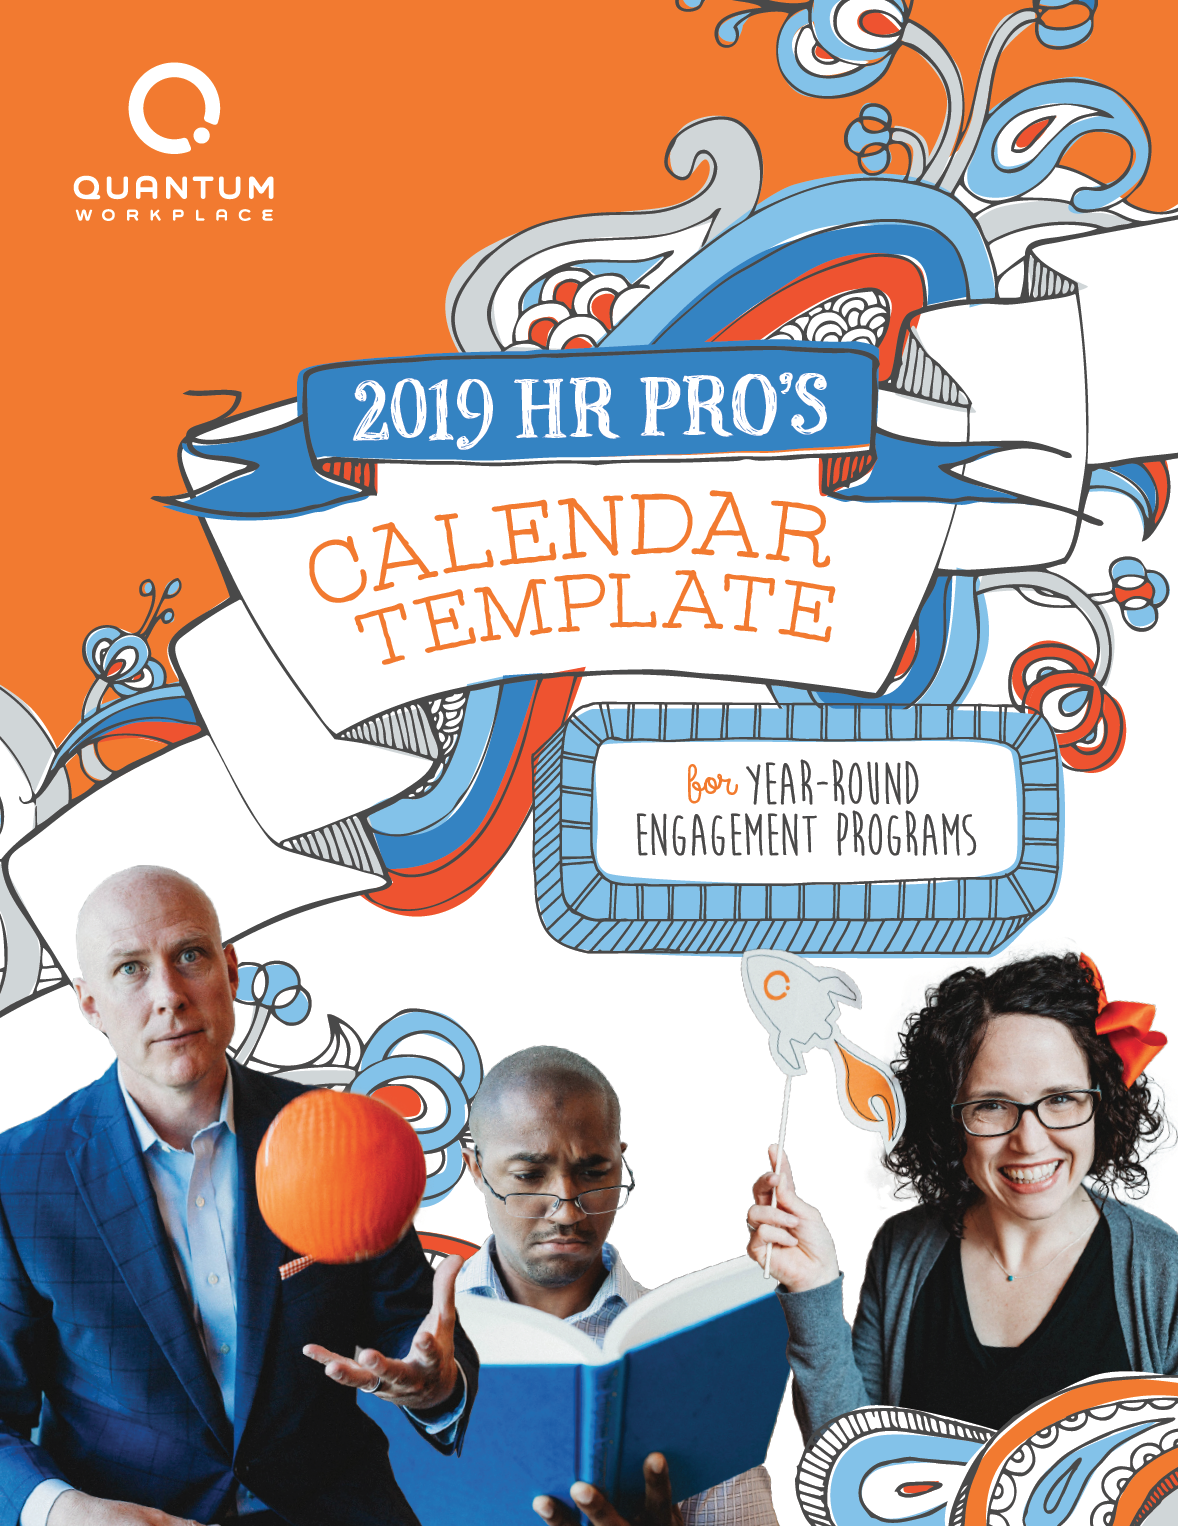 The 2019 HR Pro Calendar Template.png